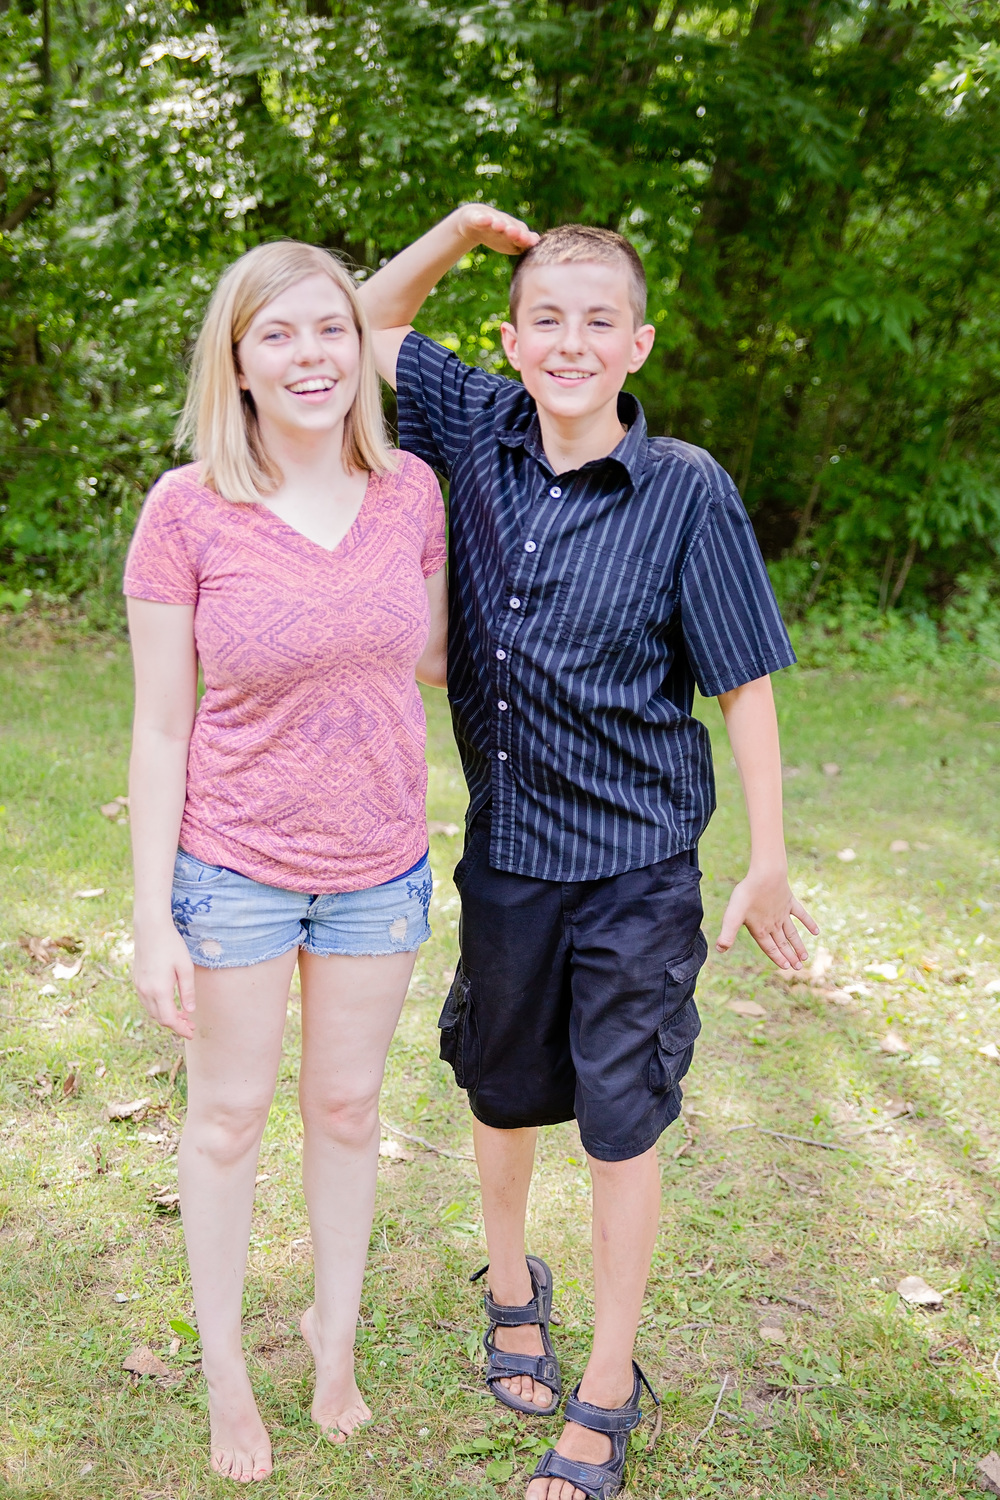 My oldest son, Cole, loves to tease his Aunt Mariah about being almost taller than her.